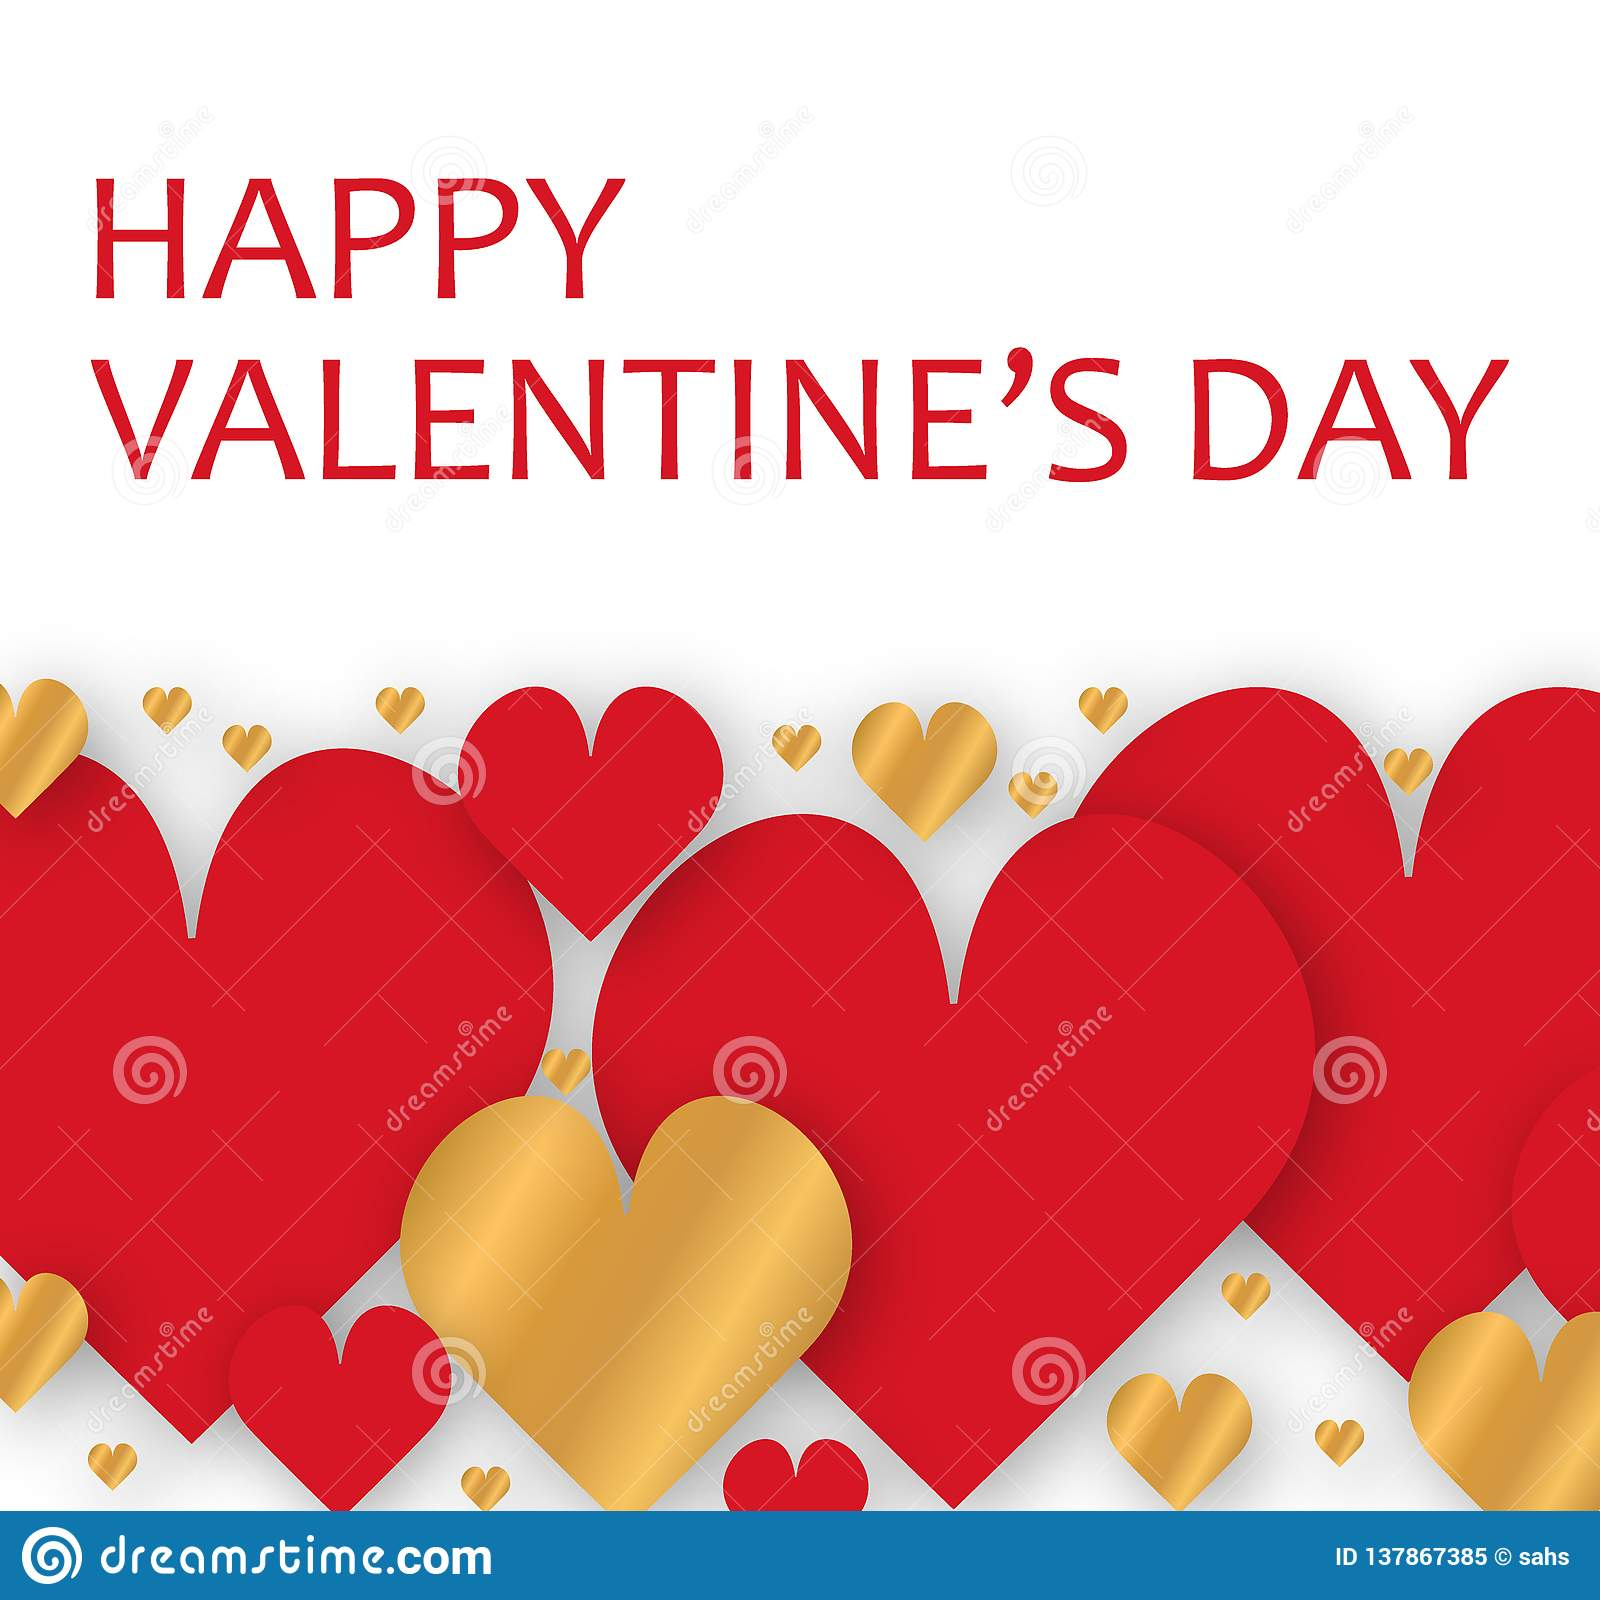 vector paper cutout postal illustration banner background wallpaper greeting card valentine day red gold hearts